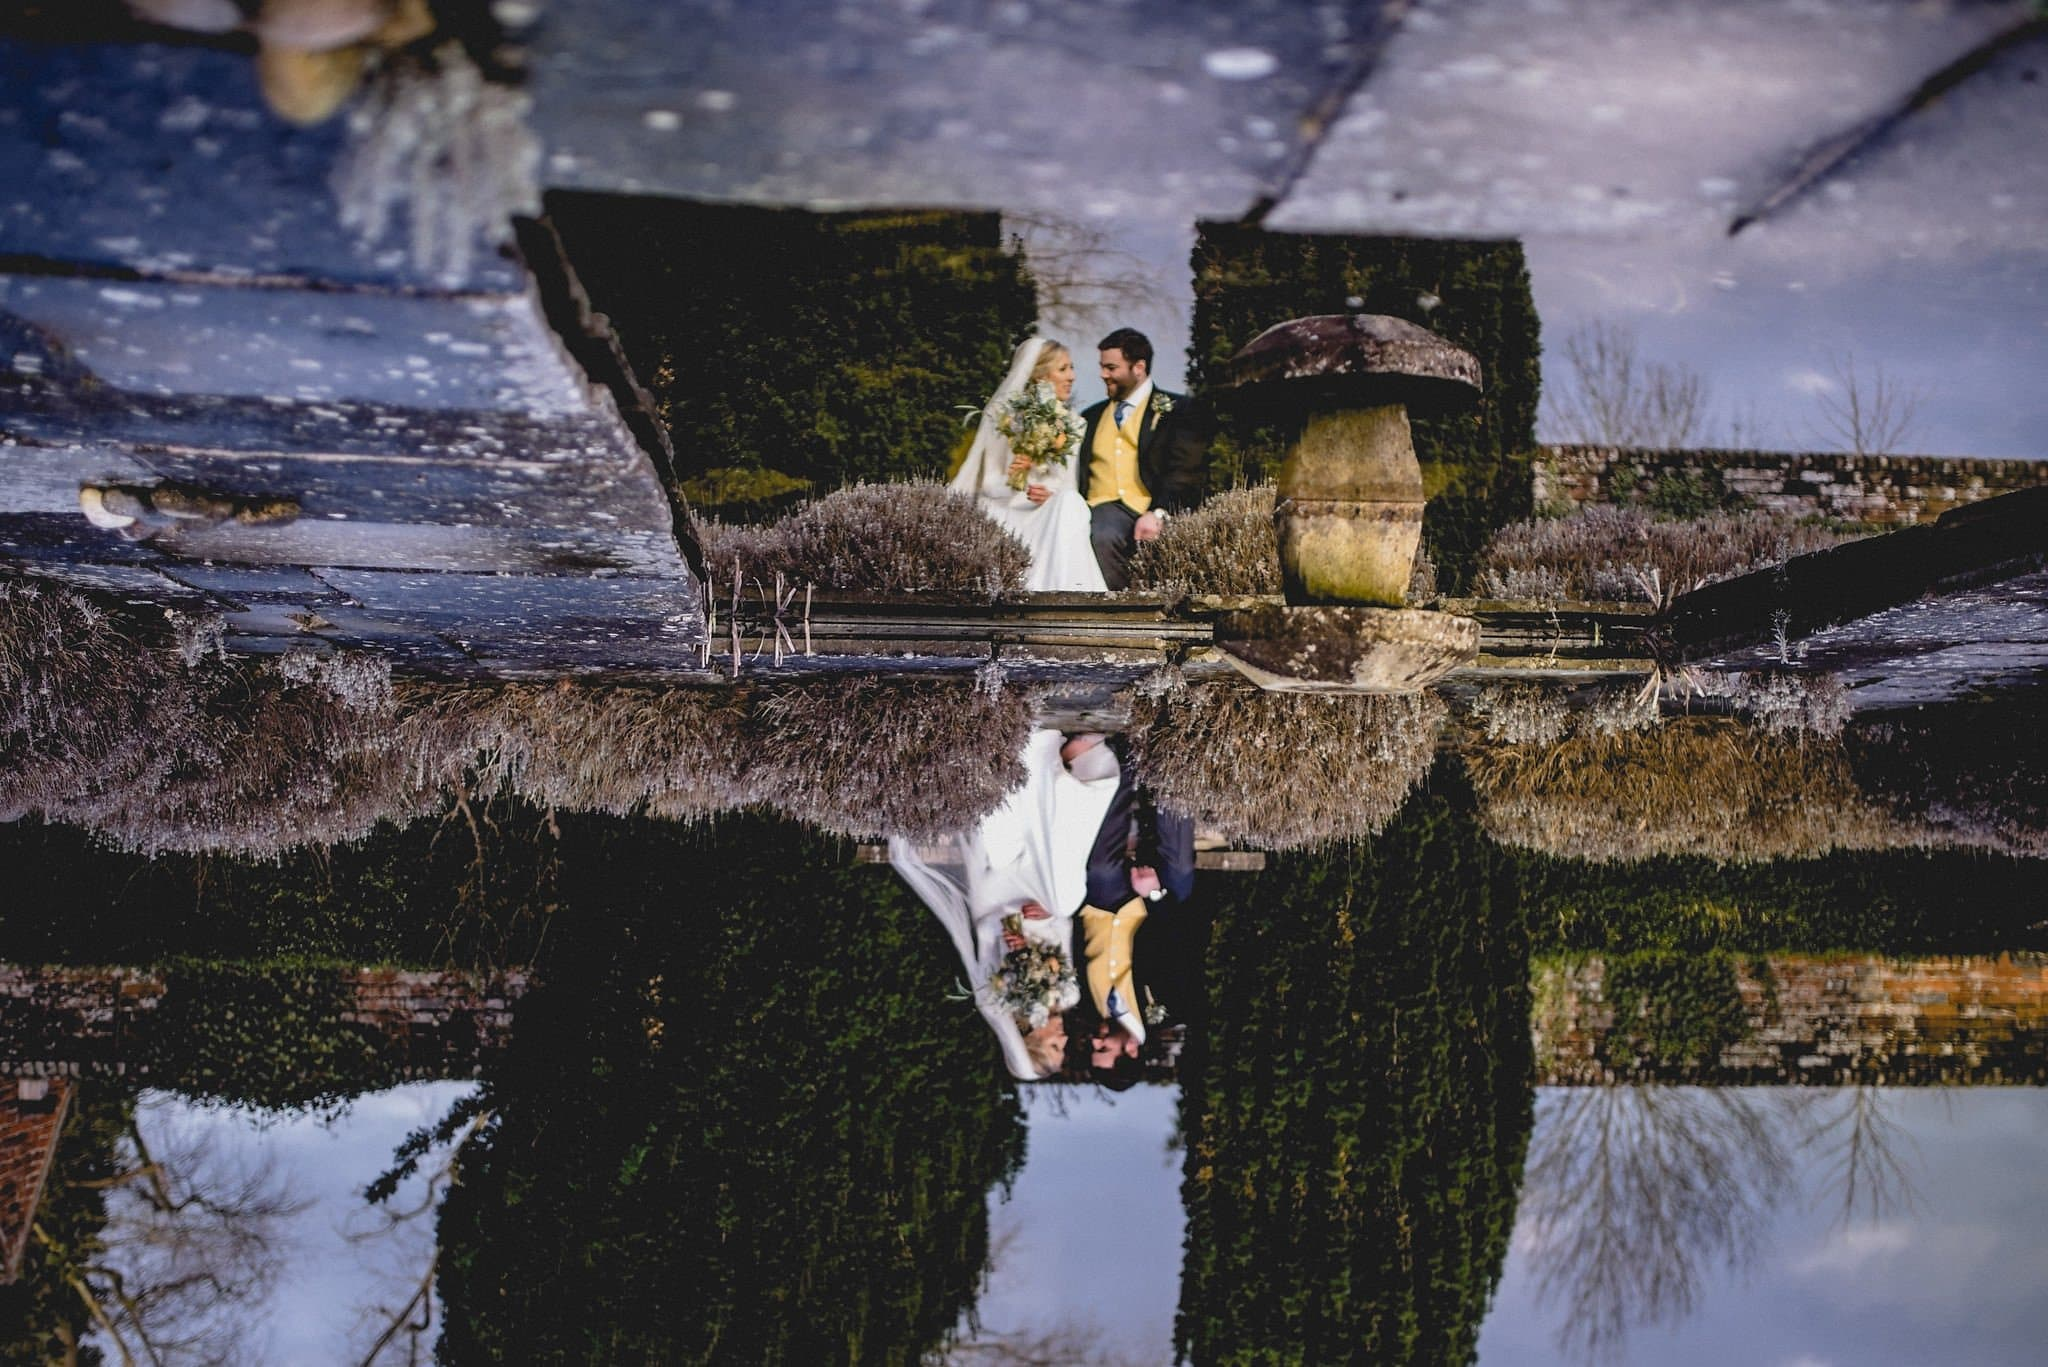 Couple's portrait and reflection in a pond at Littlefield Manor